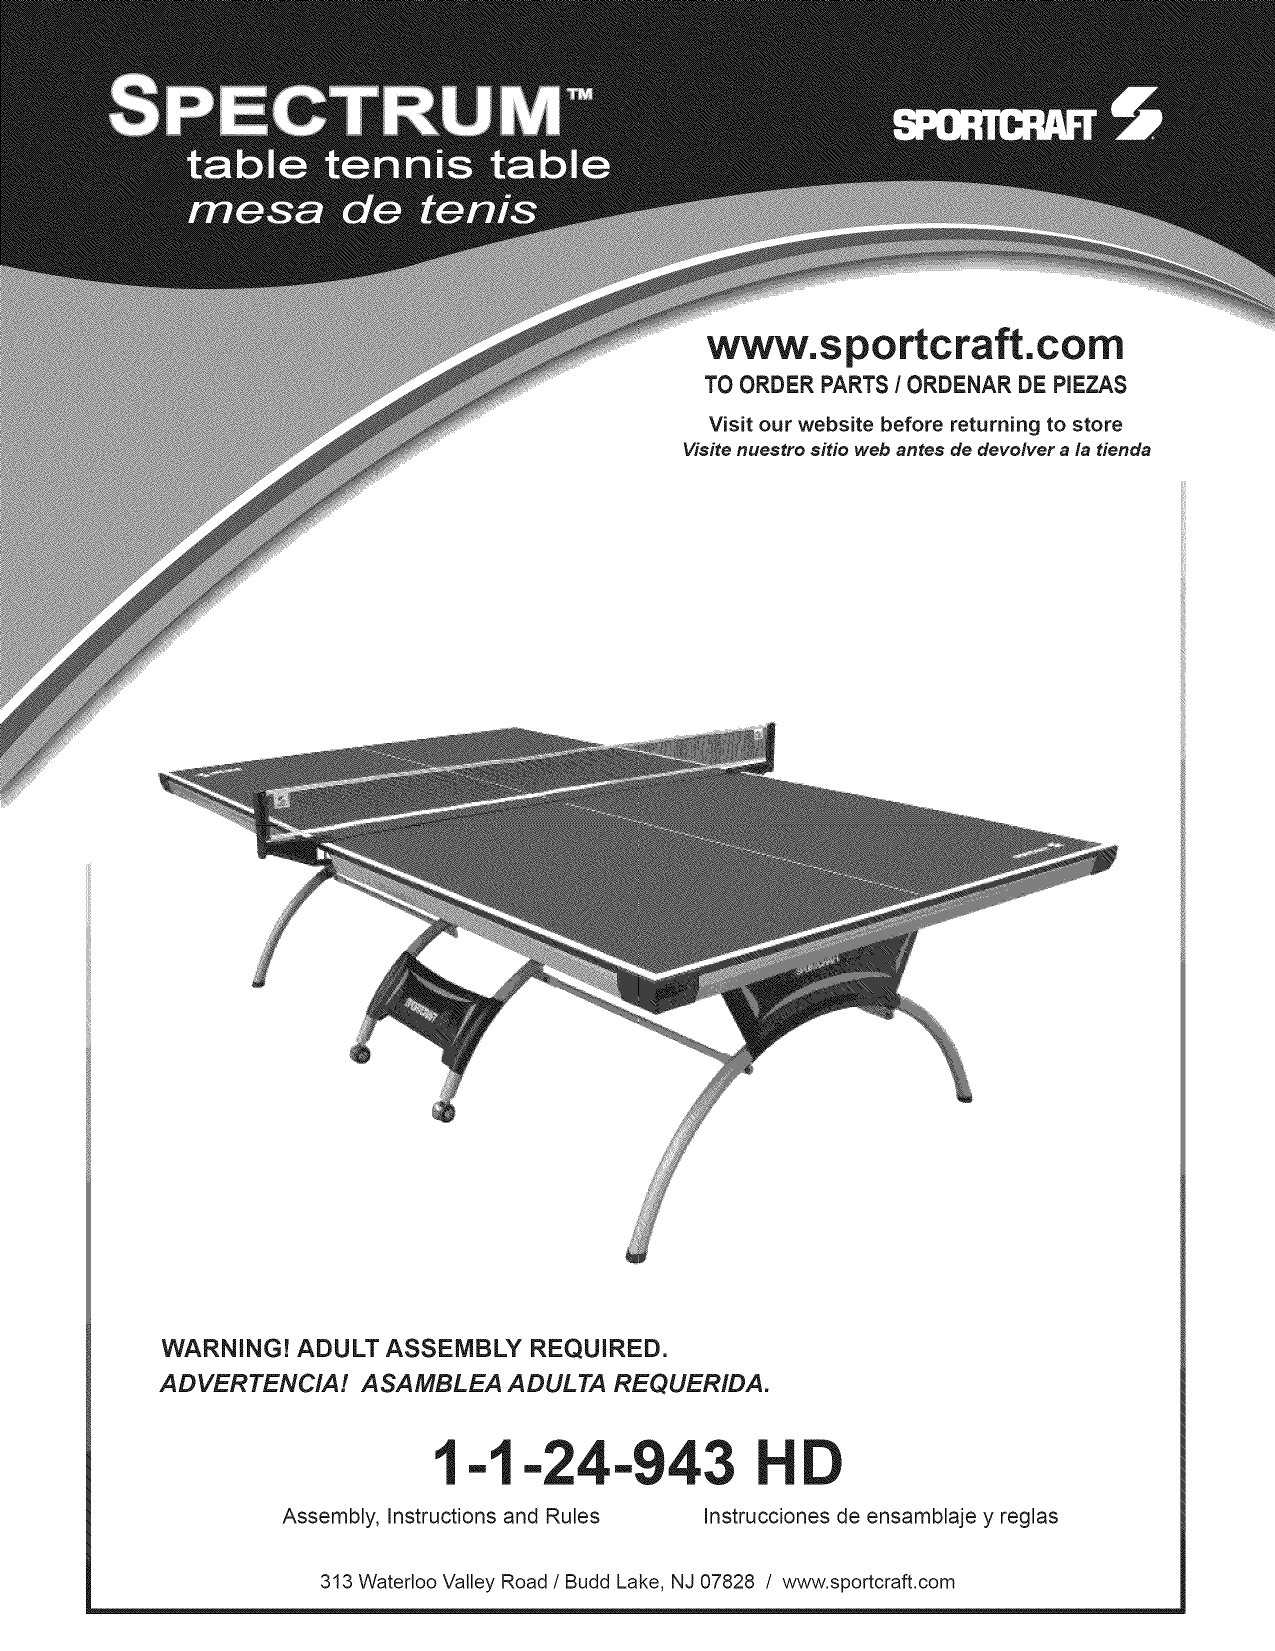 Sportcraft 1 24 943hd User Manual Tennis Table Manuals And